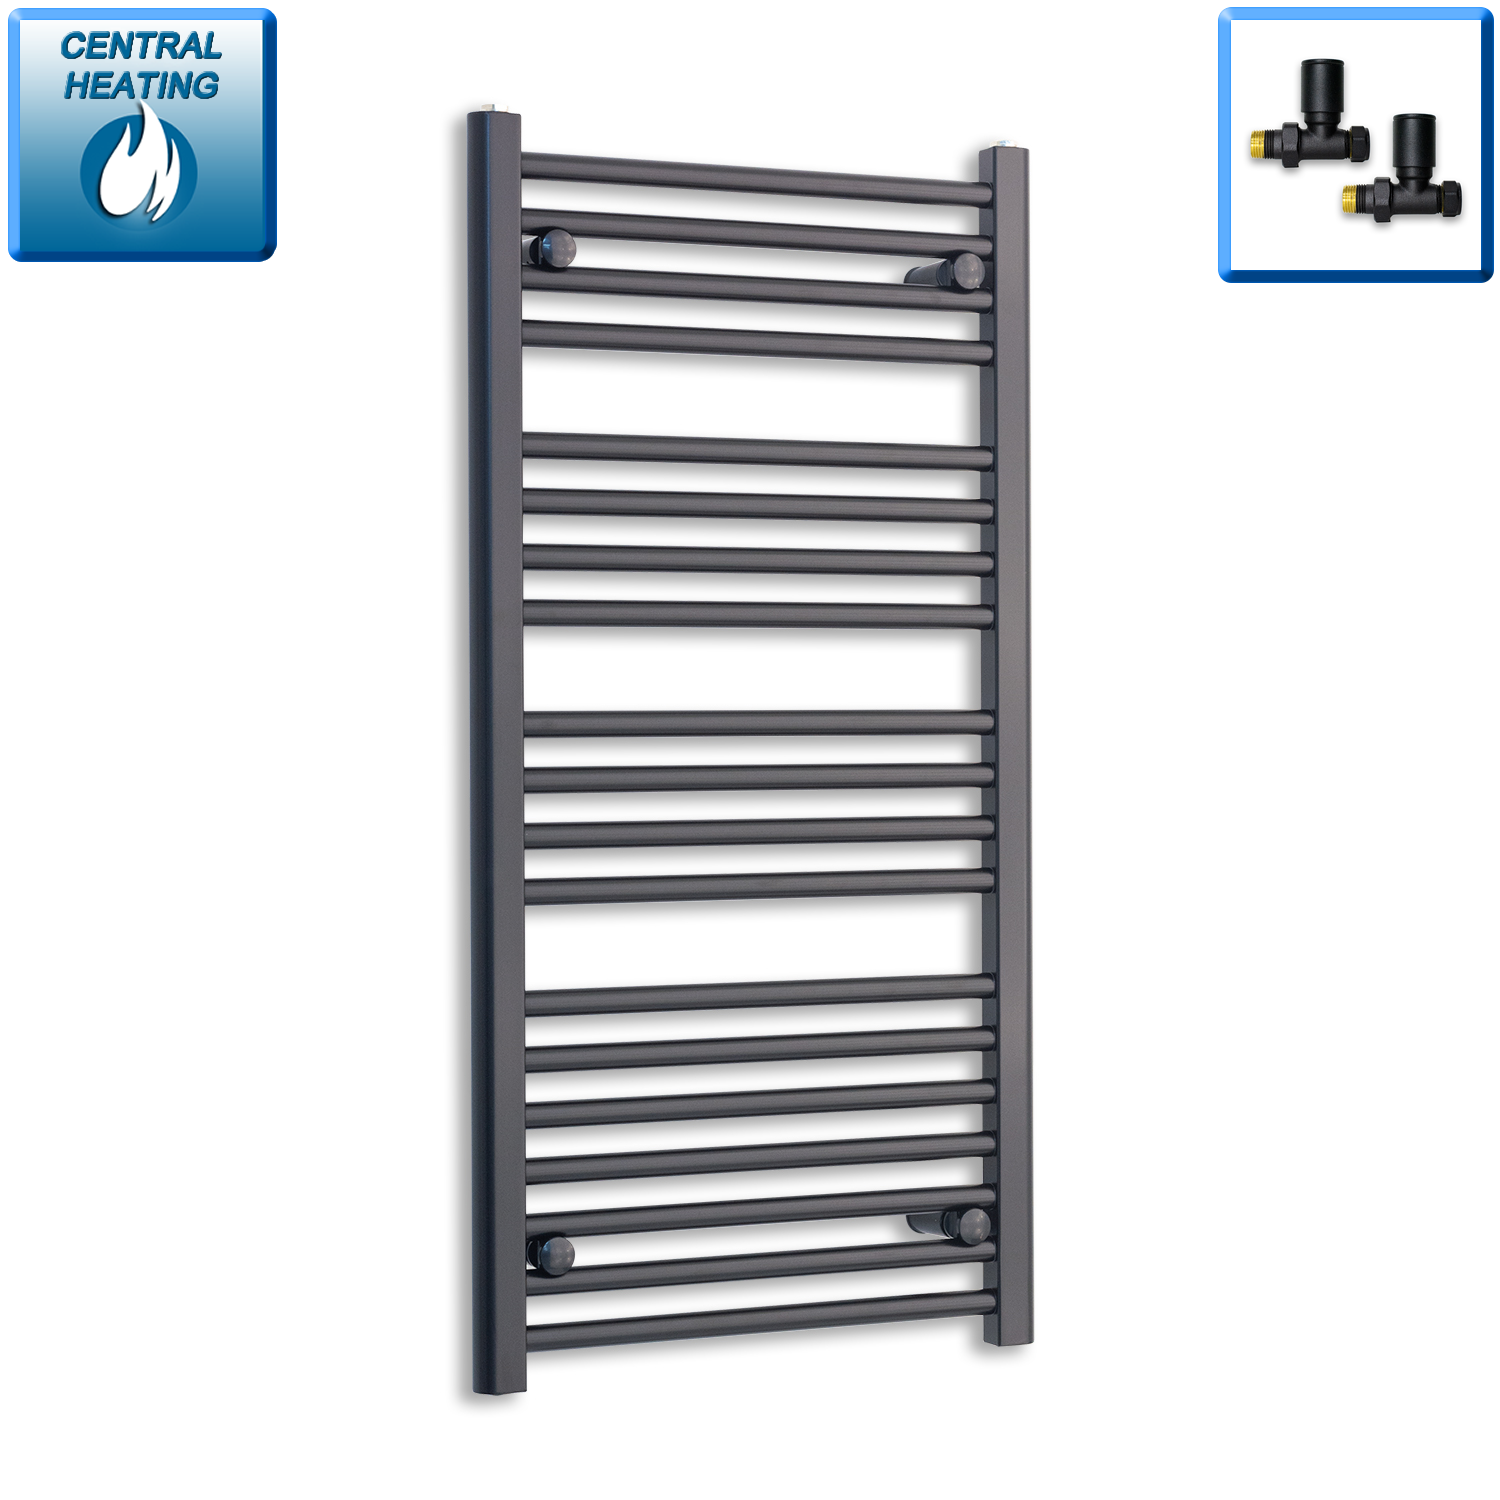 600mm Wide 800mm High Flat Black Heated Towel Rail Radiator HTR,With Angled Valve